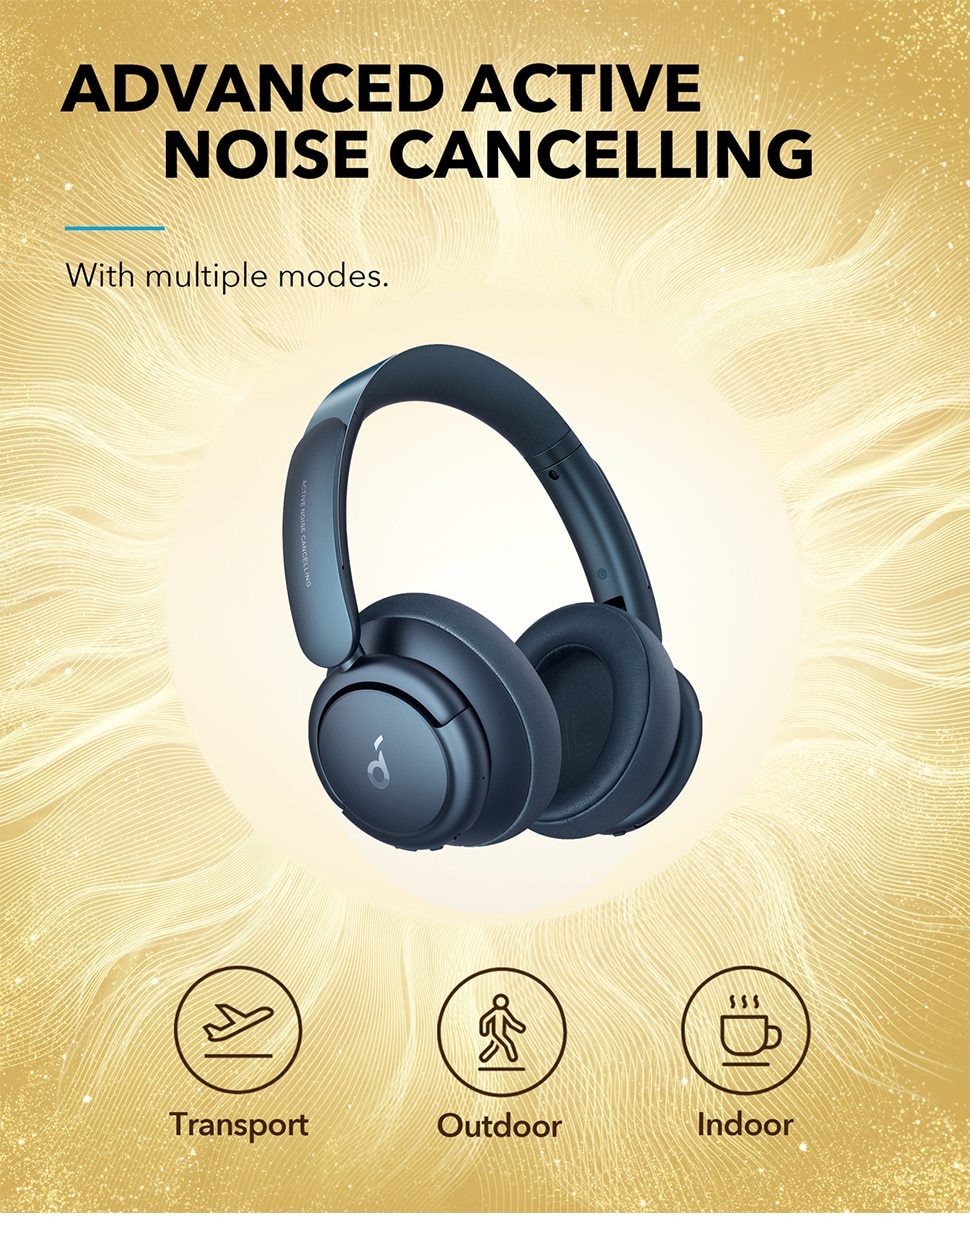 H8e001379970e40d6a21f6c38238fbb79S - Soundcore by Anker Life Q35 Multi Mode Active Noise Cancelling Headphones,40H Playtime, Comfortable Fit, Clear Calls